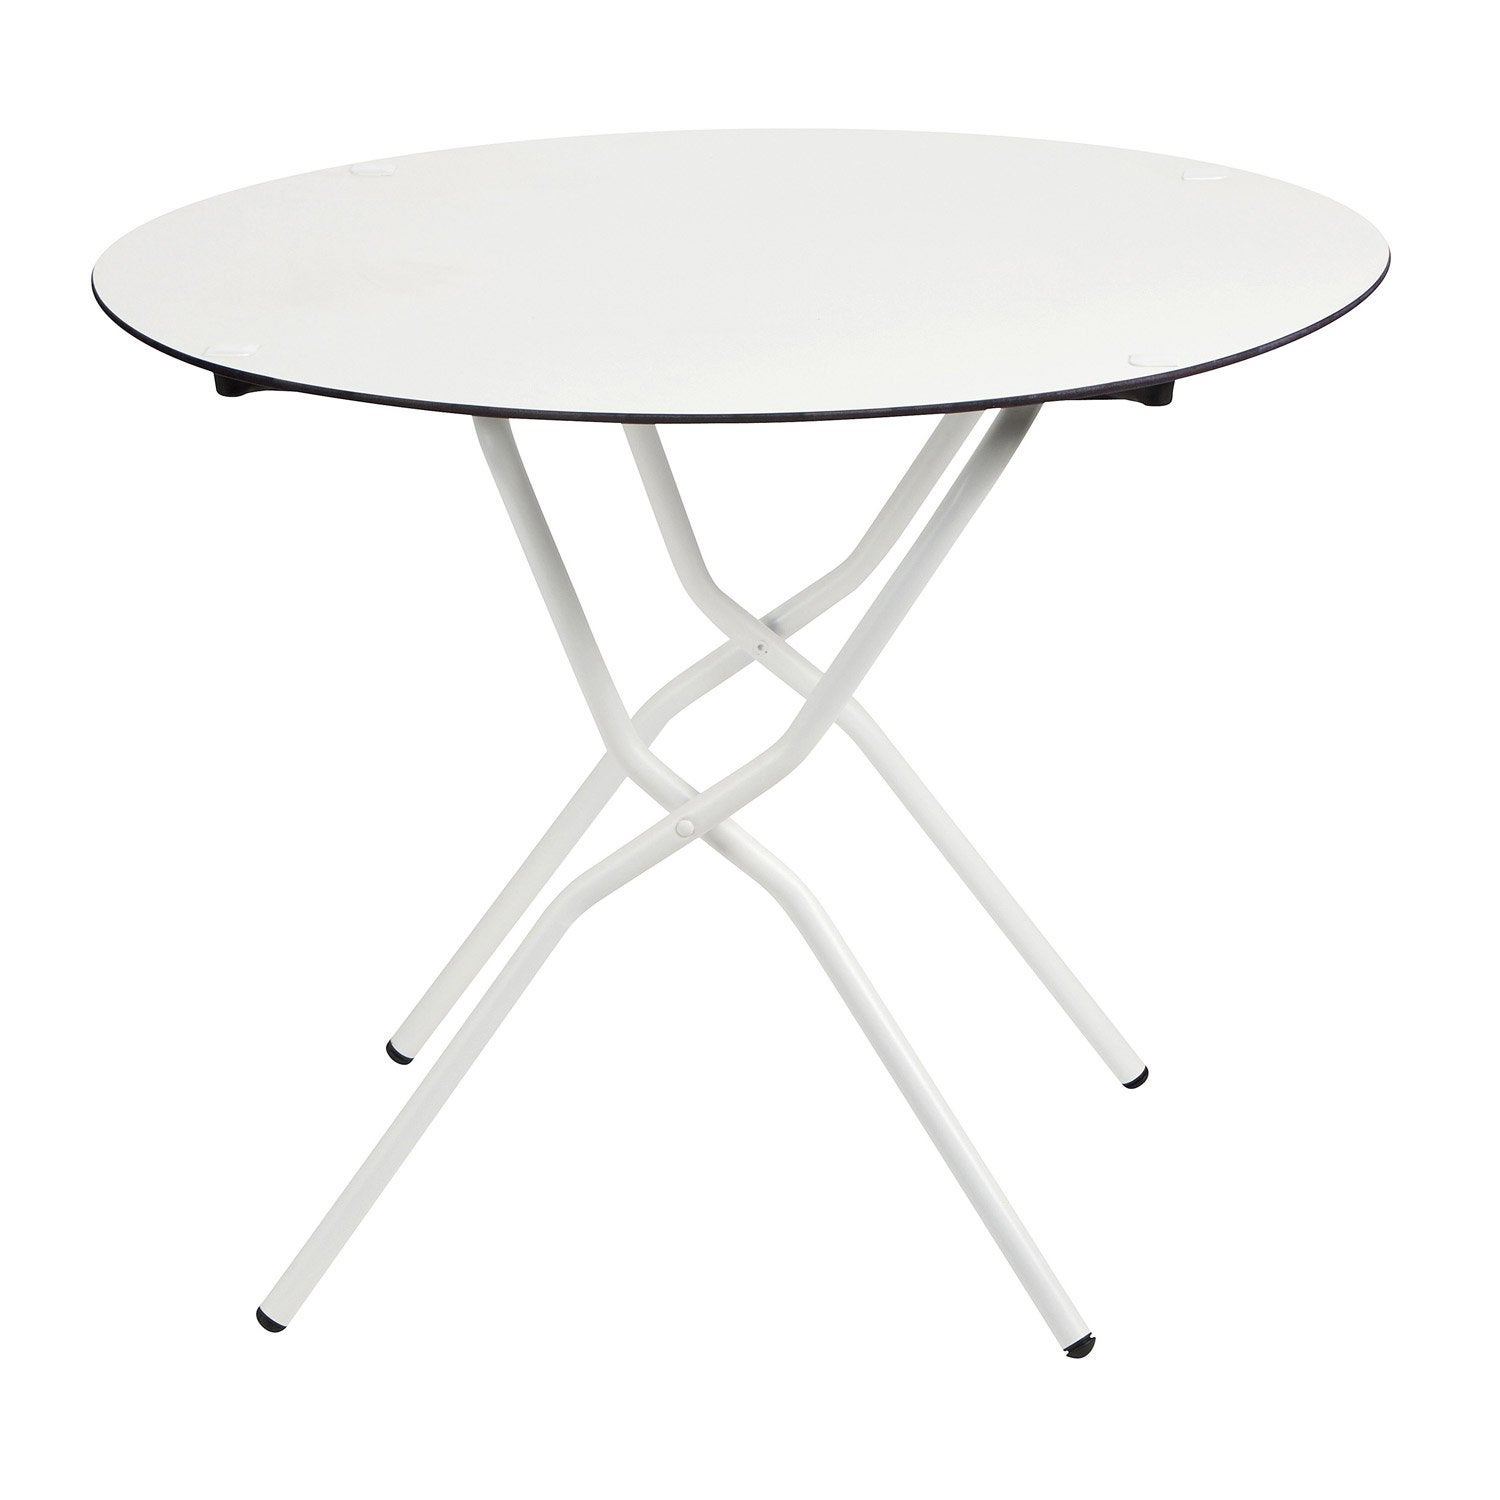 table de jardin lafuma anytime lafuma ronde blanc 4 6 personnes leroy merlin. Black Bedroom Furniture Sets. Home Design Ideas